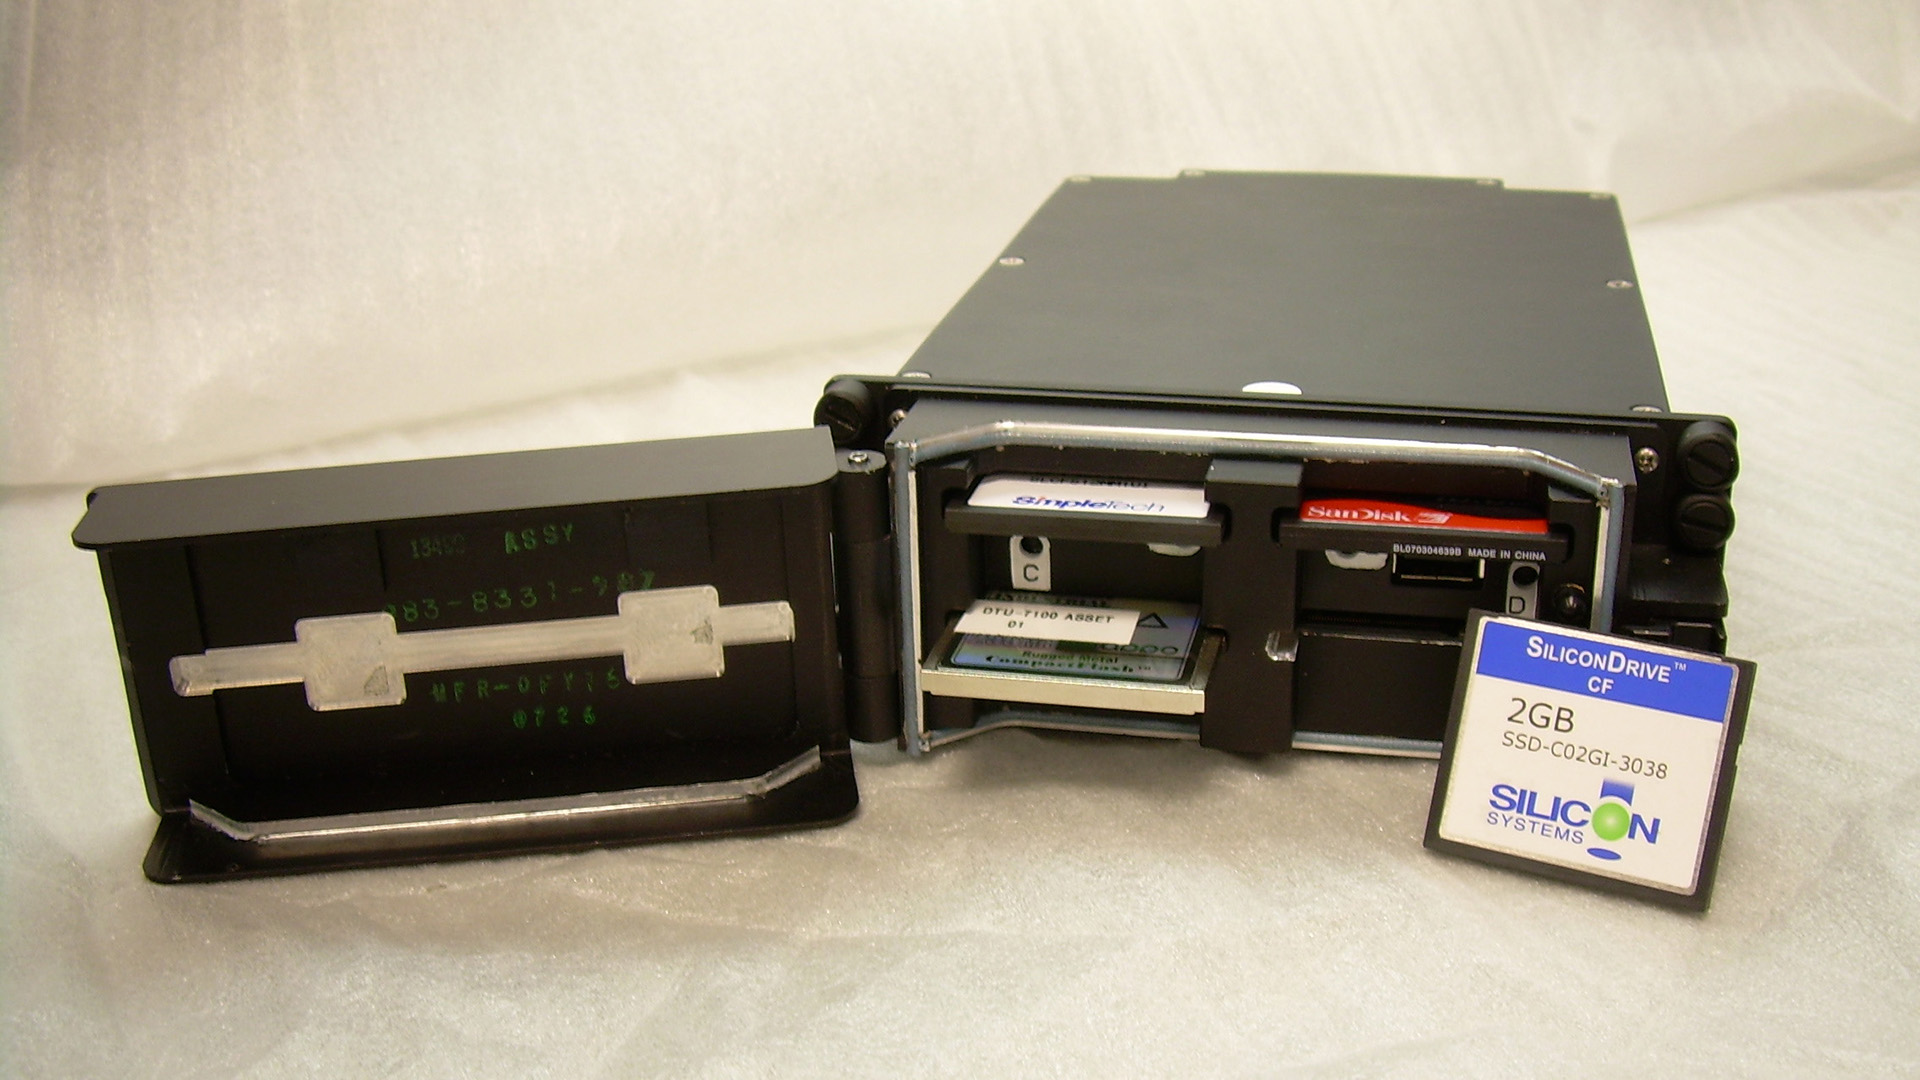 Dtu 7100 Data Transfer Unit